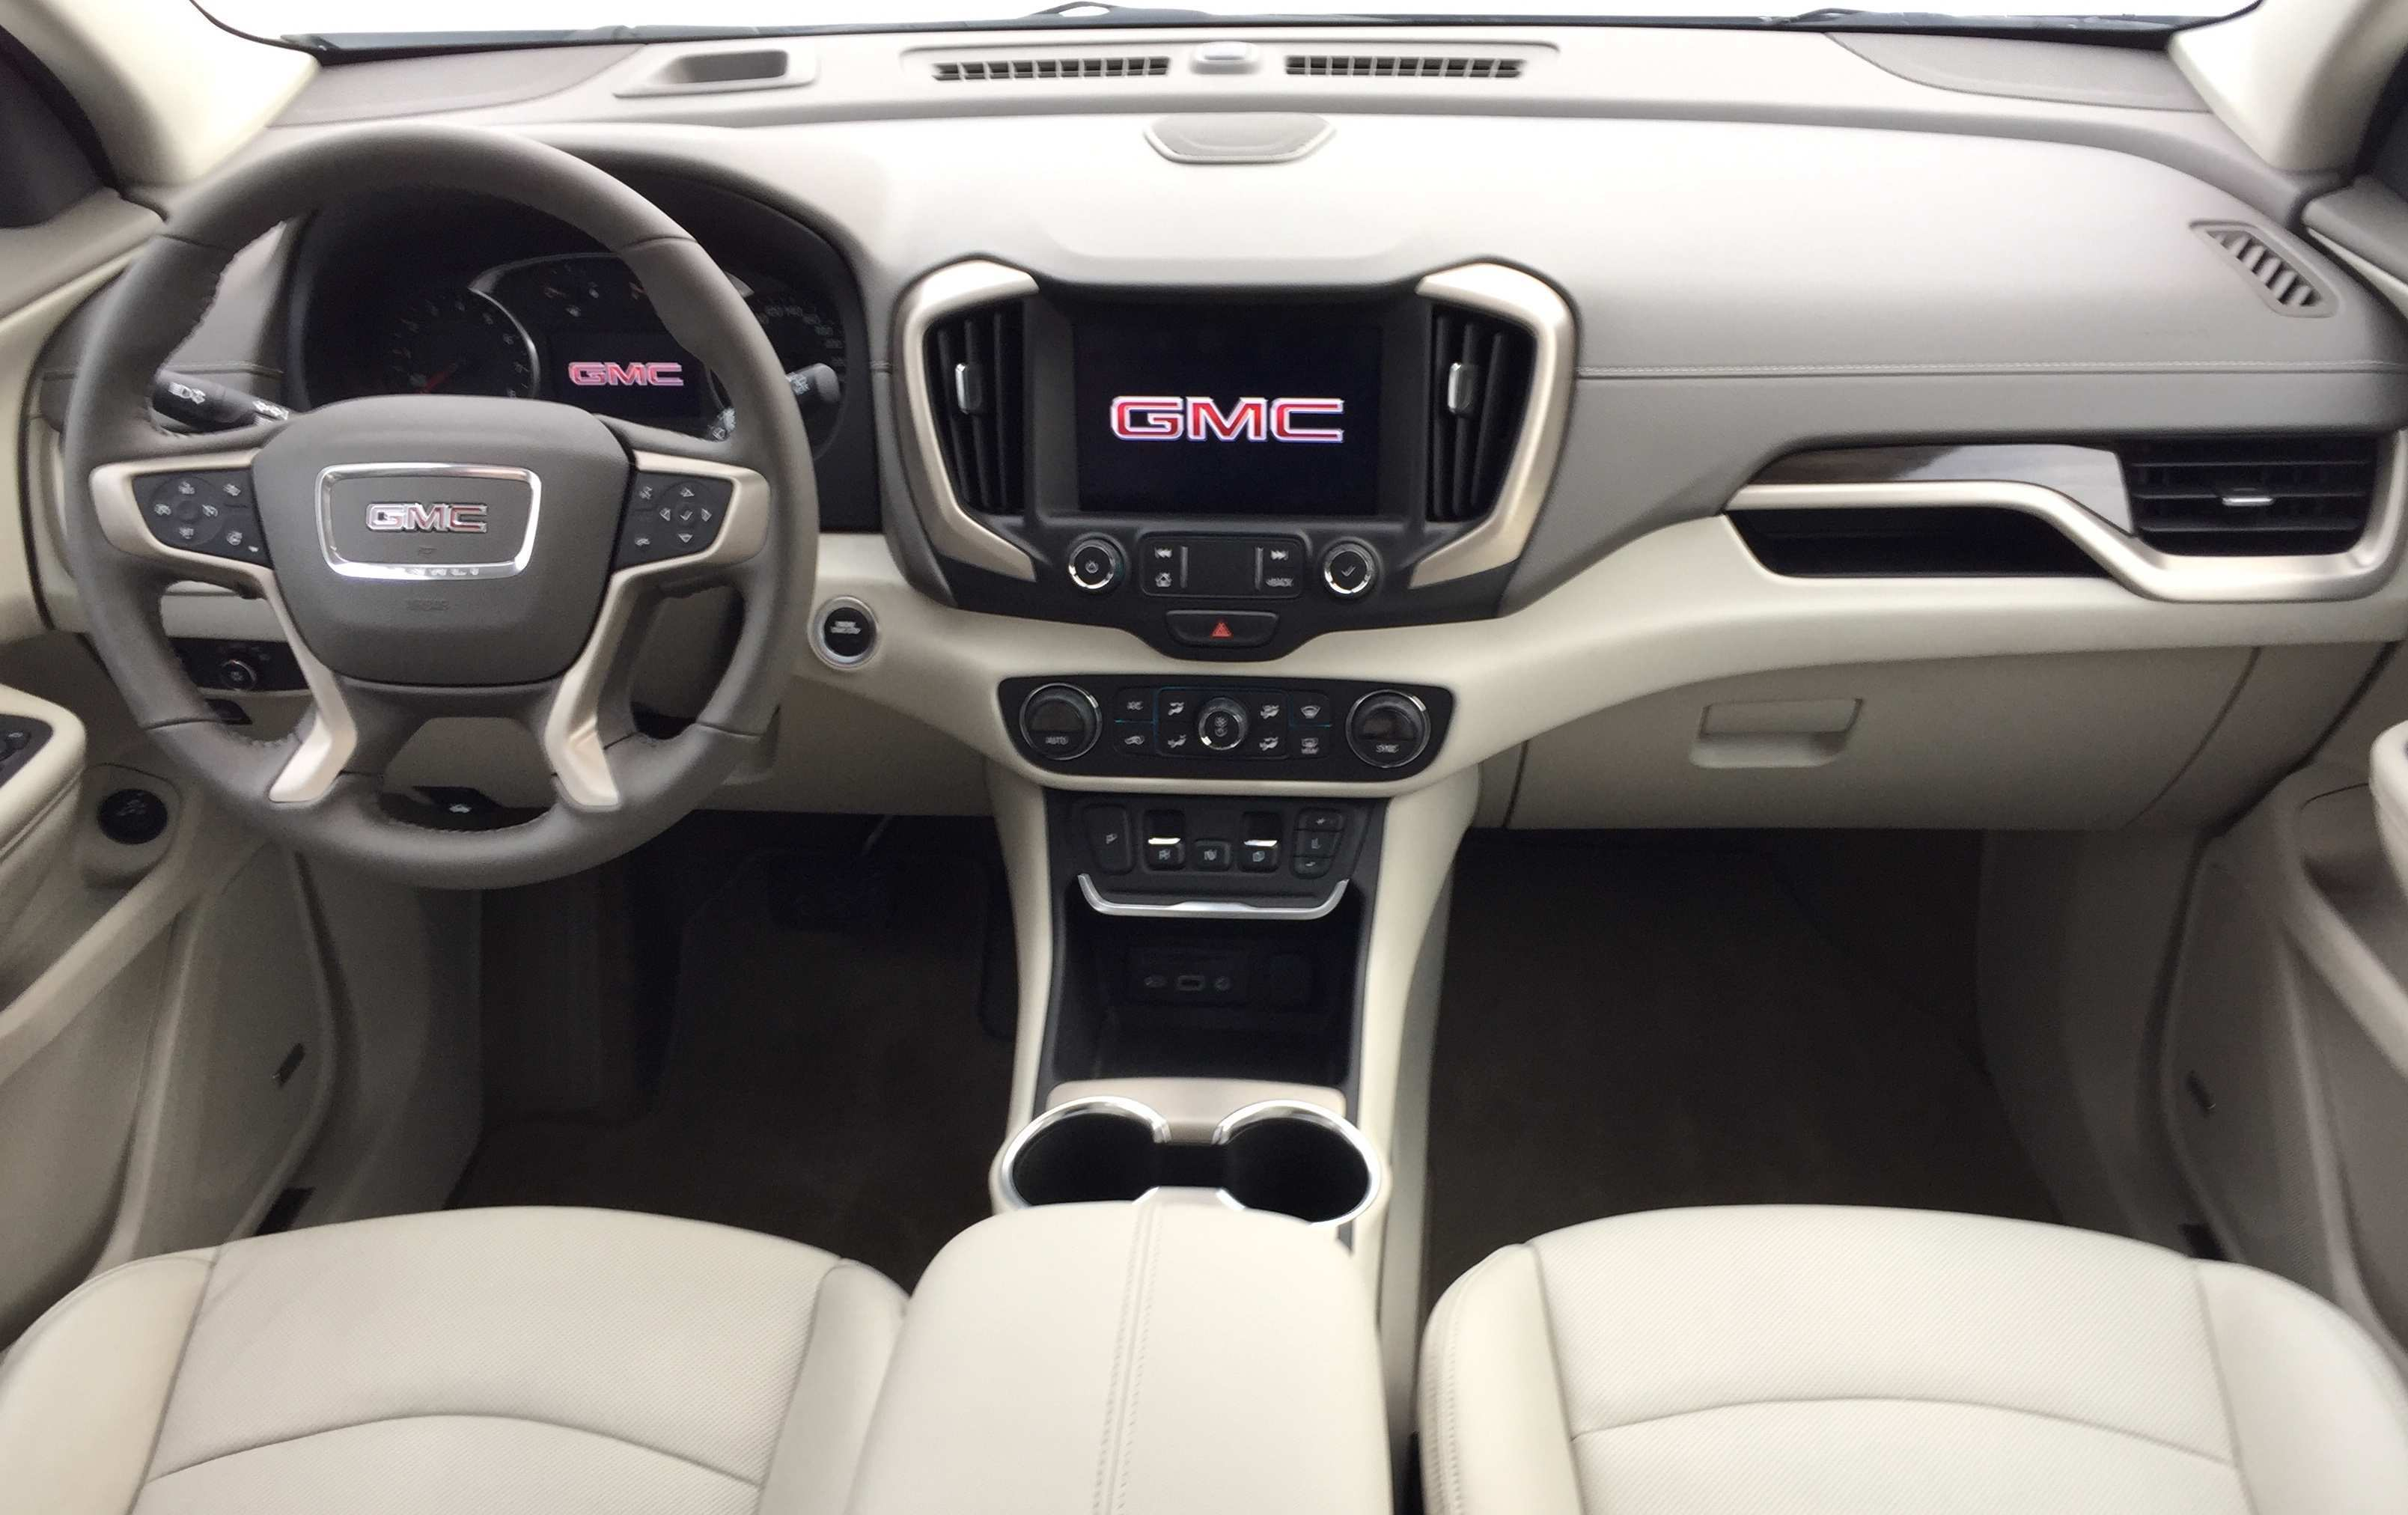 91 New The Gmc 2019 Terrain Denali First Drive Engine by The Gmc 2019 Terrain Denali First Drive